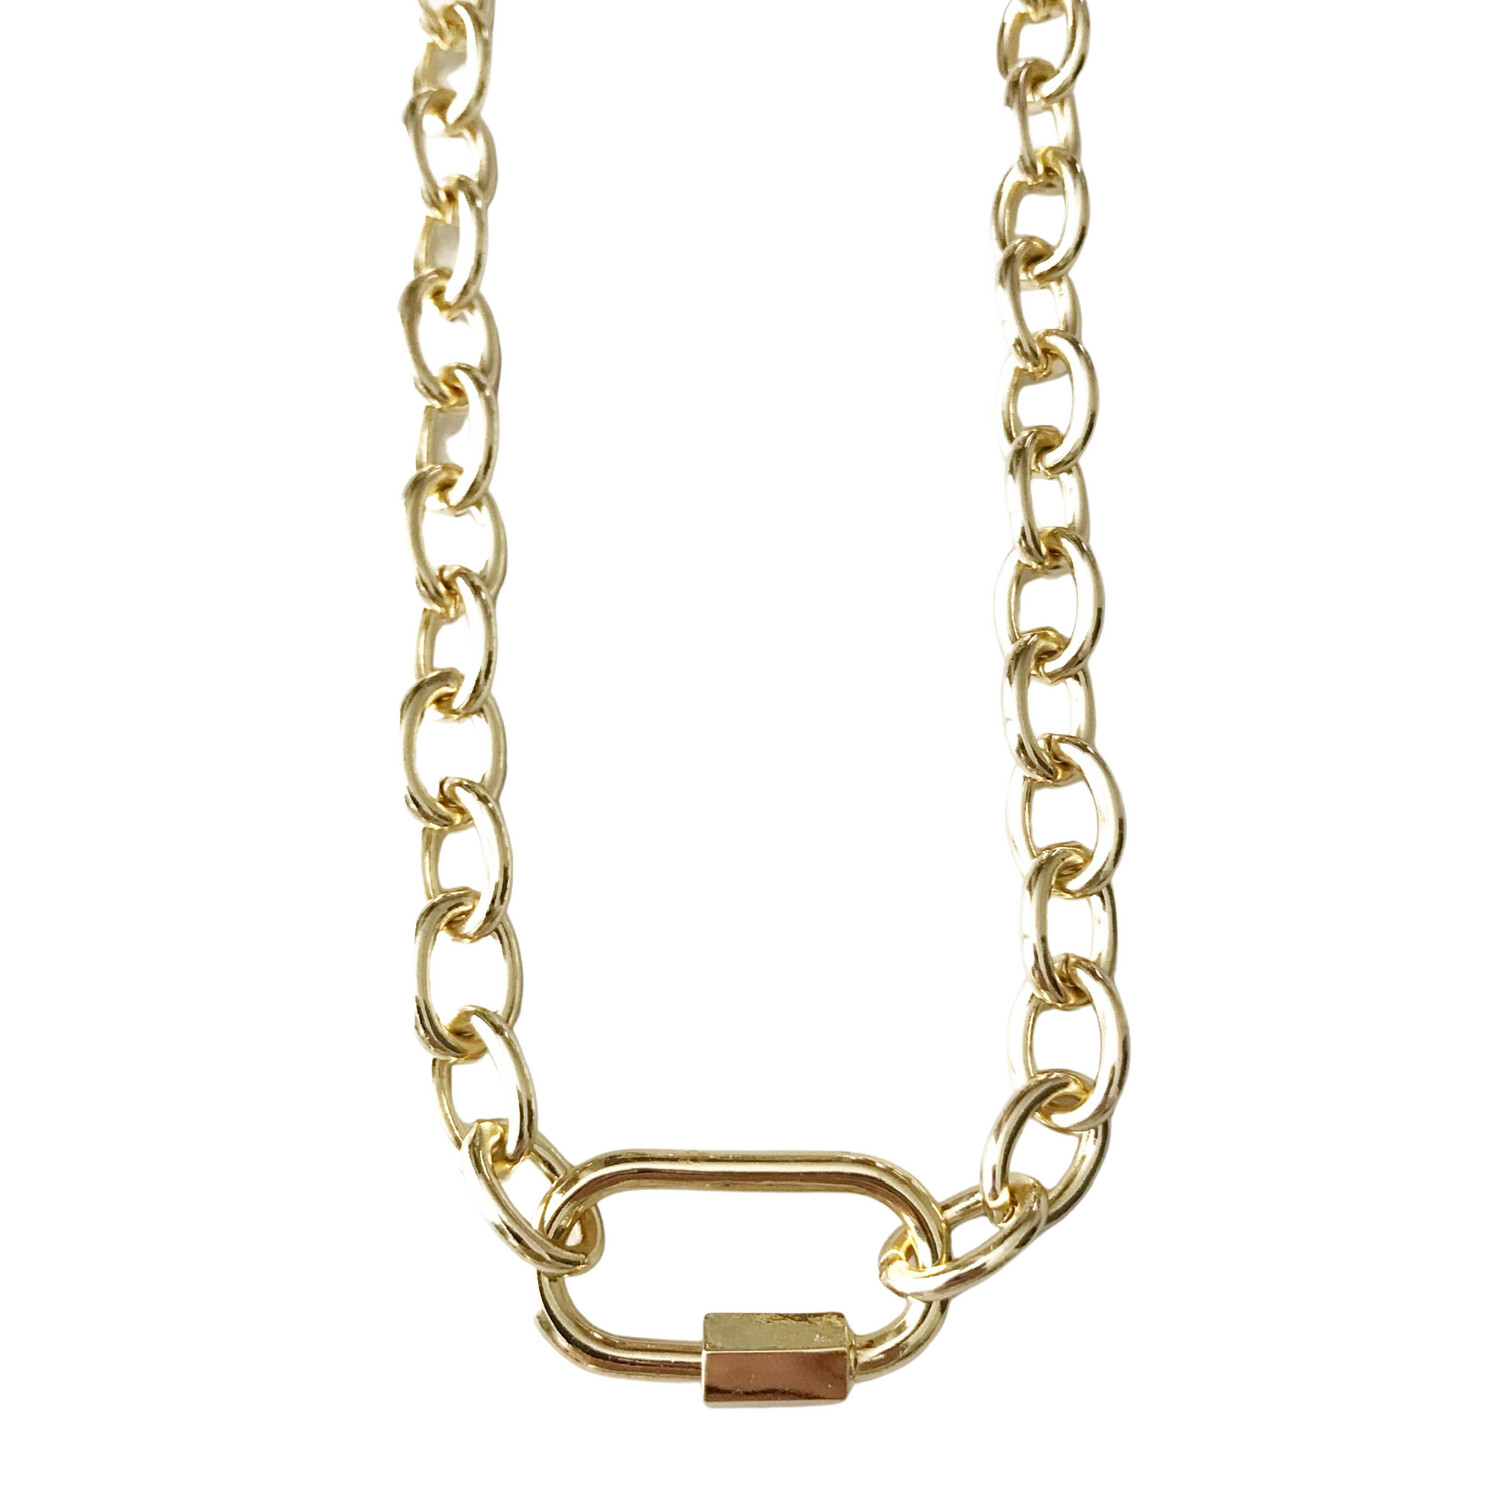 Chunky Carabiner Necklace